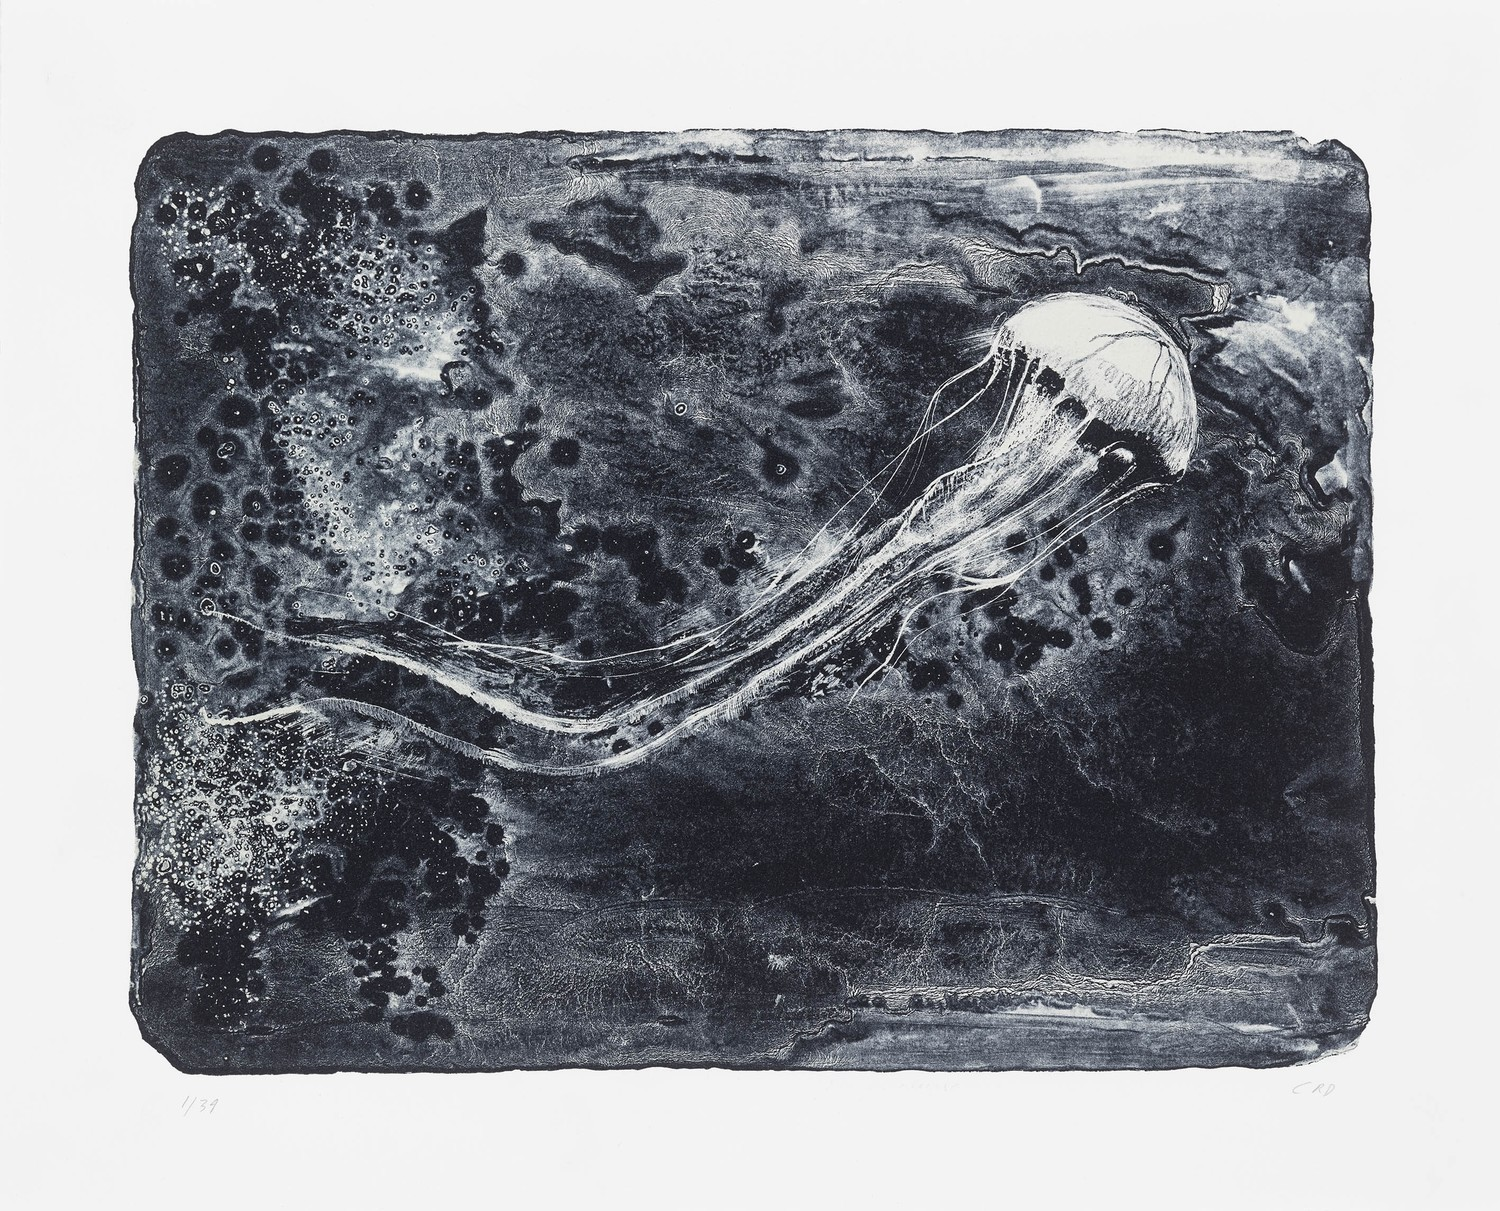 Tiny Creature - Lithograph